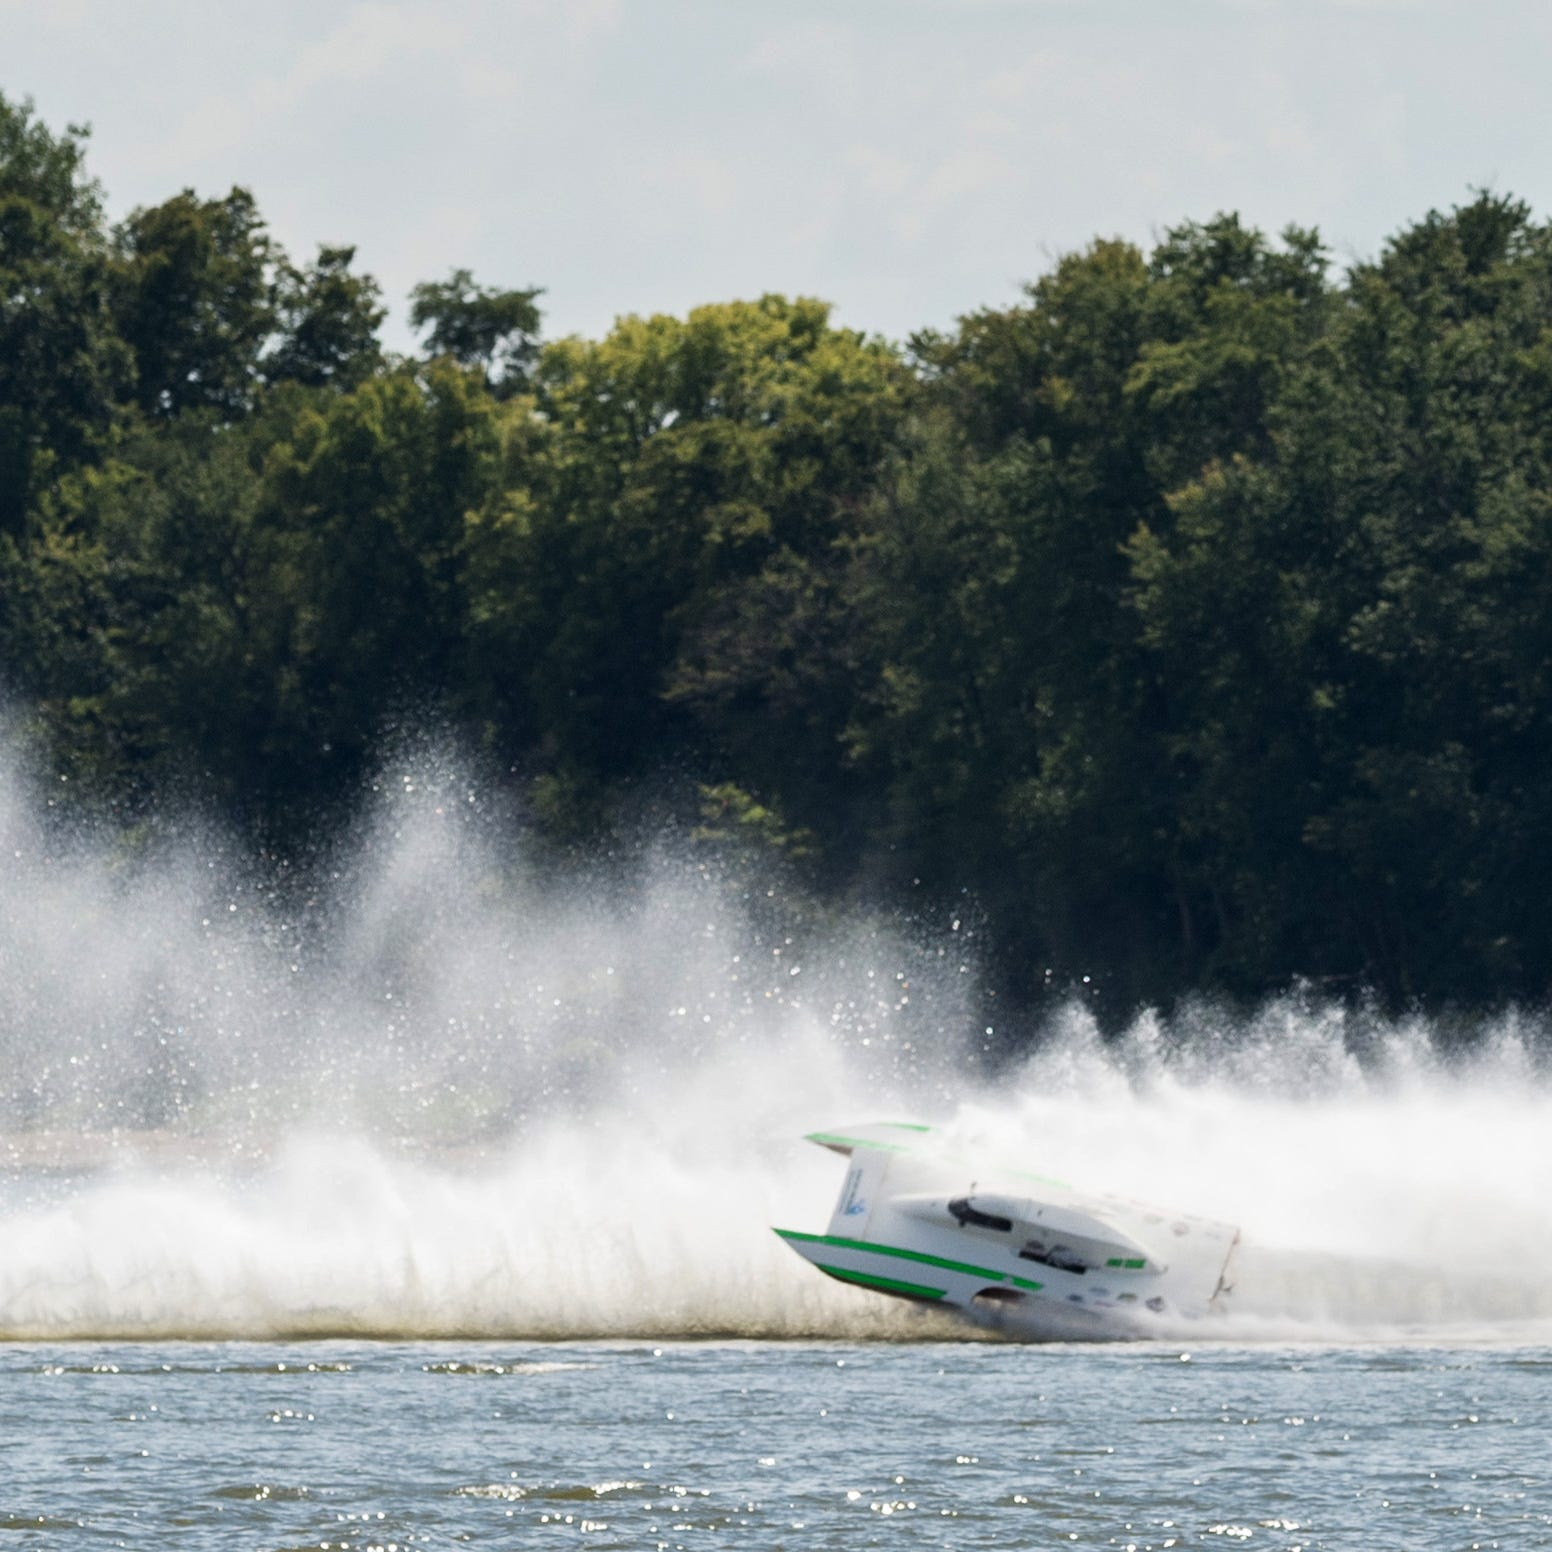 CVB requests that hydroplane racing in Evansville be nixed